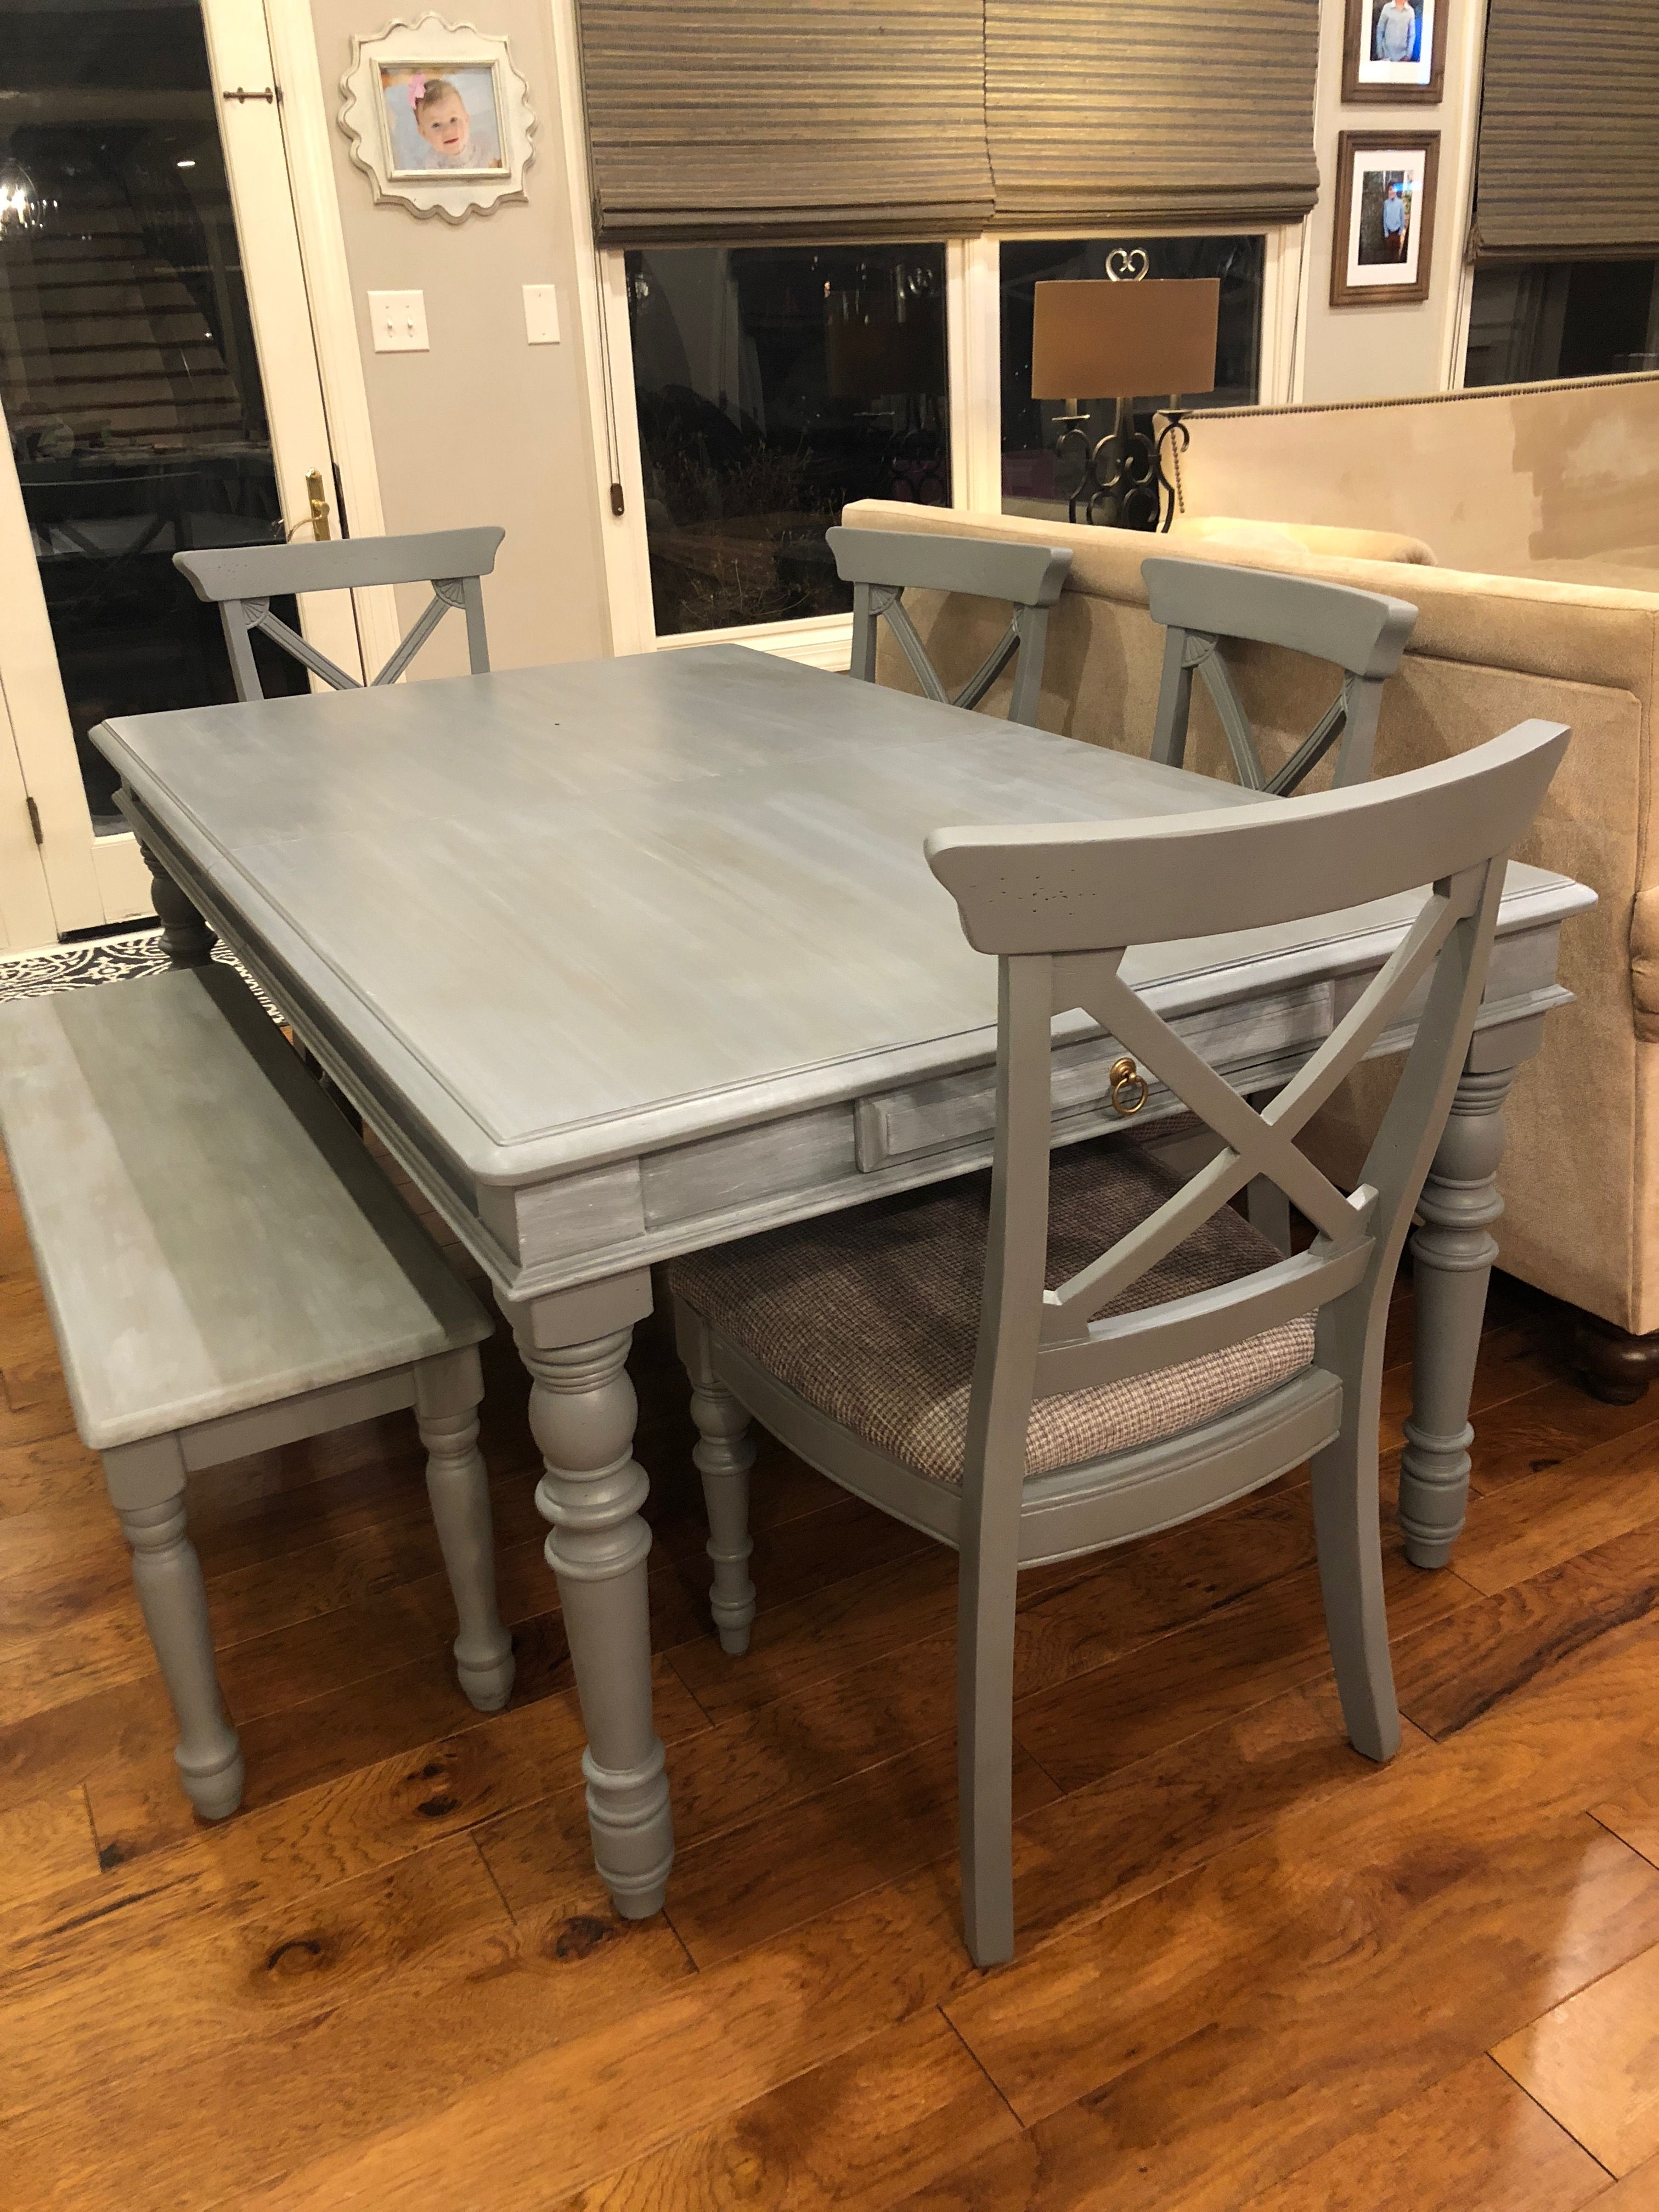 Chalk painted kitchen table and chairs